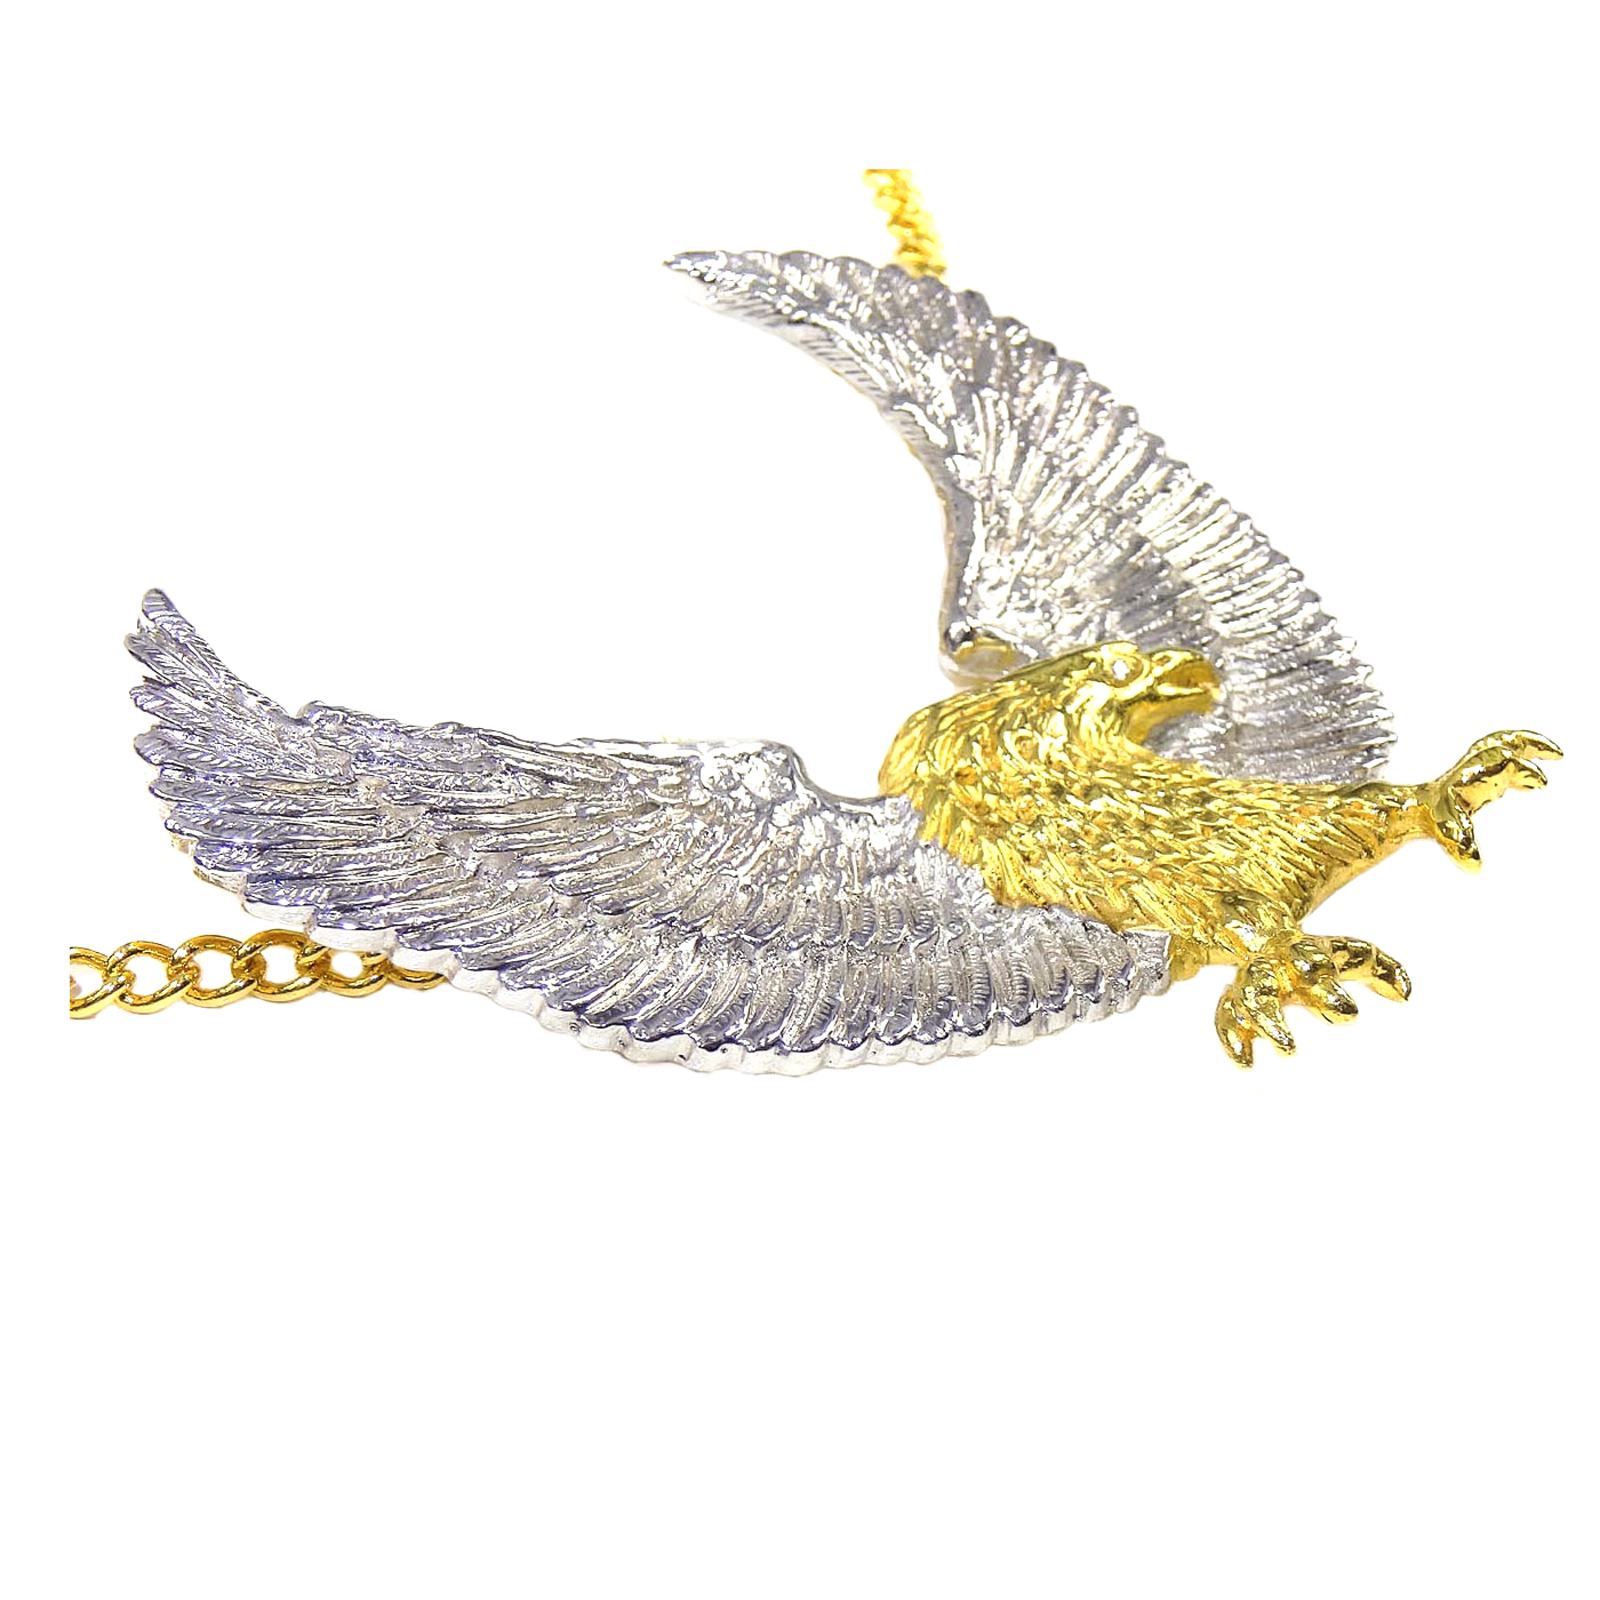 necklace pendant mallalbania eagle albanian dsc small product